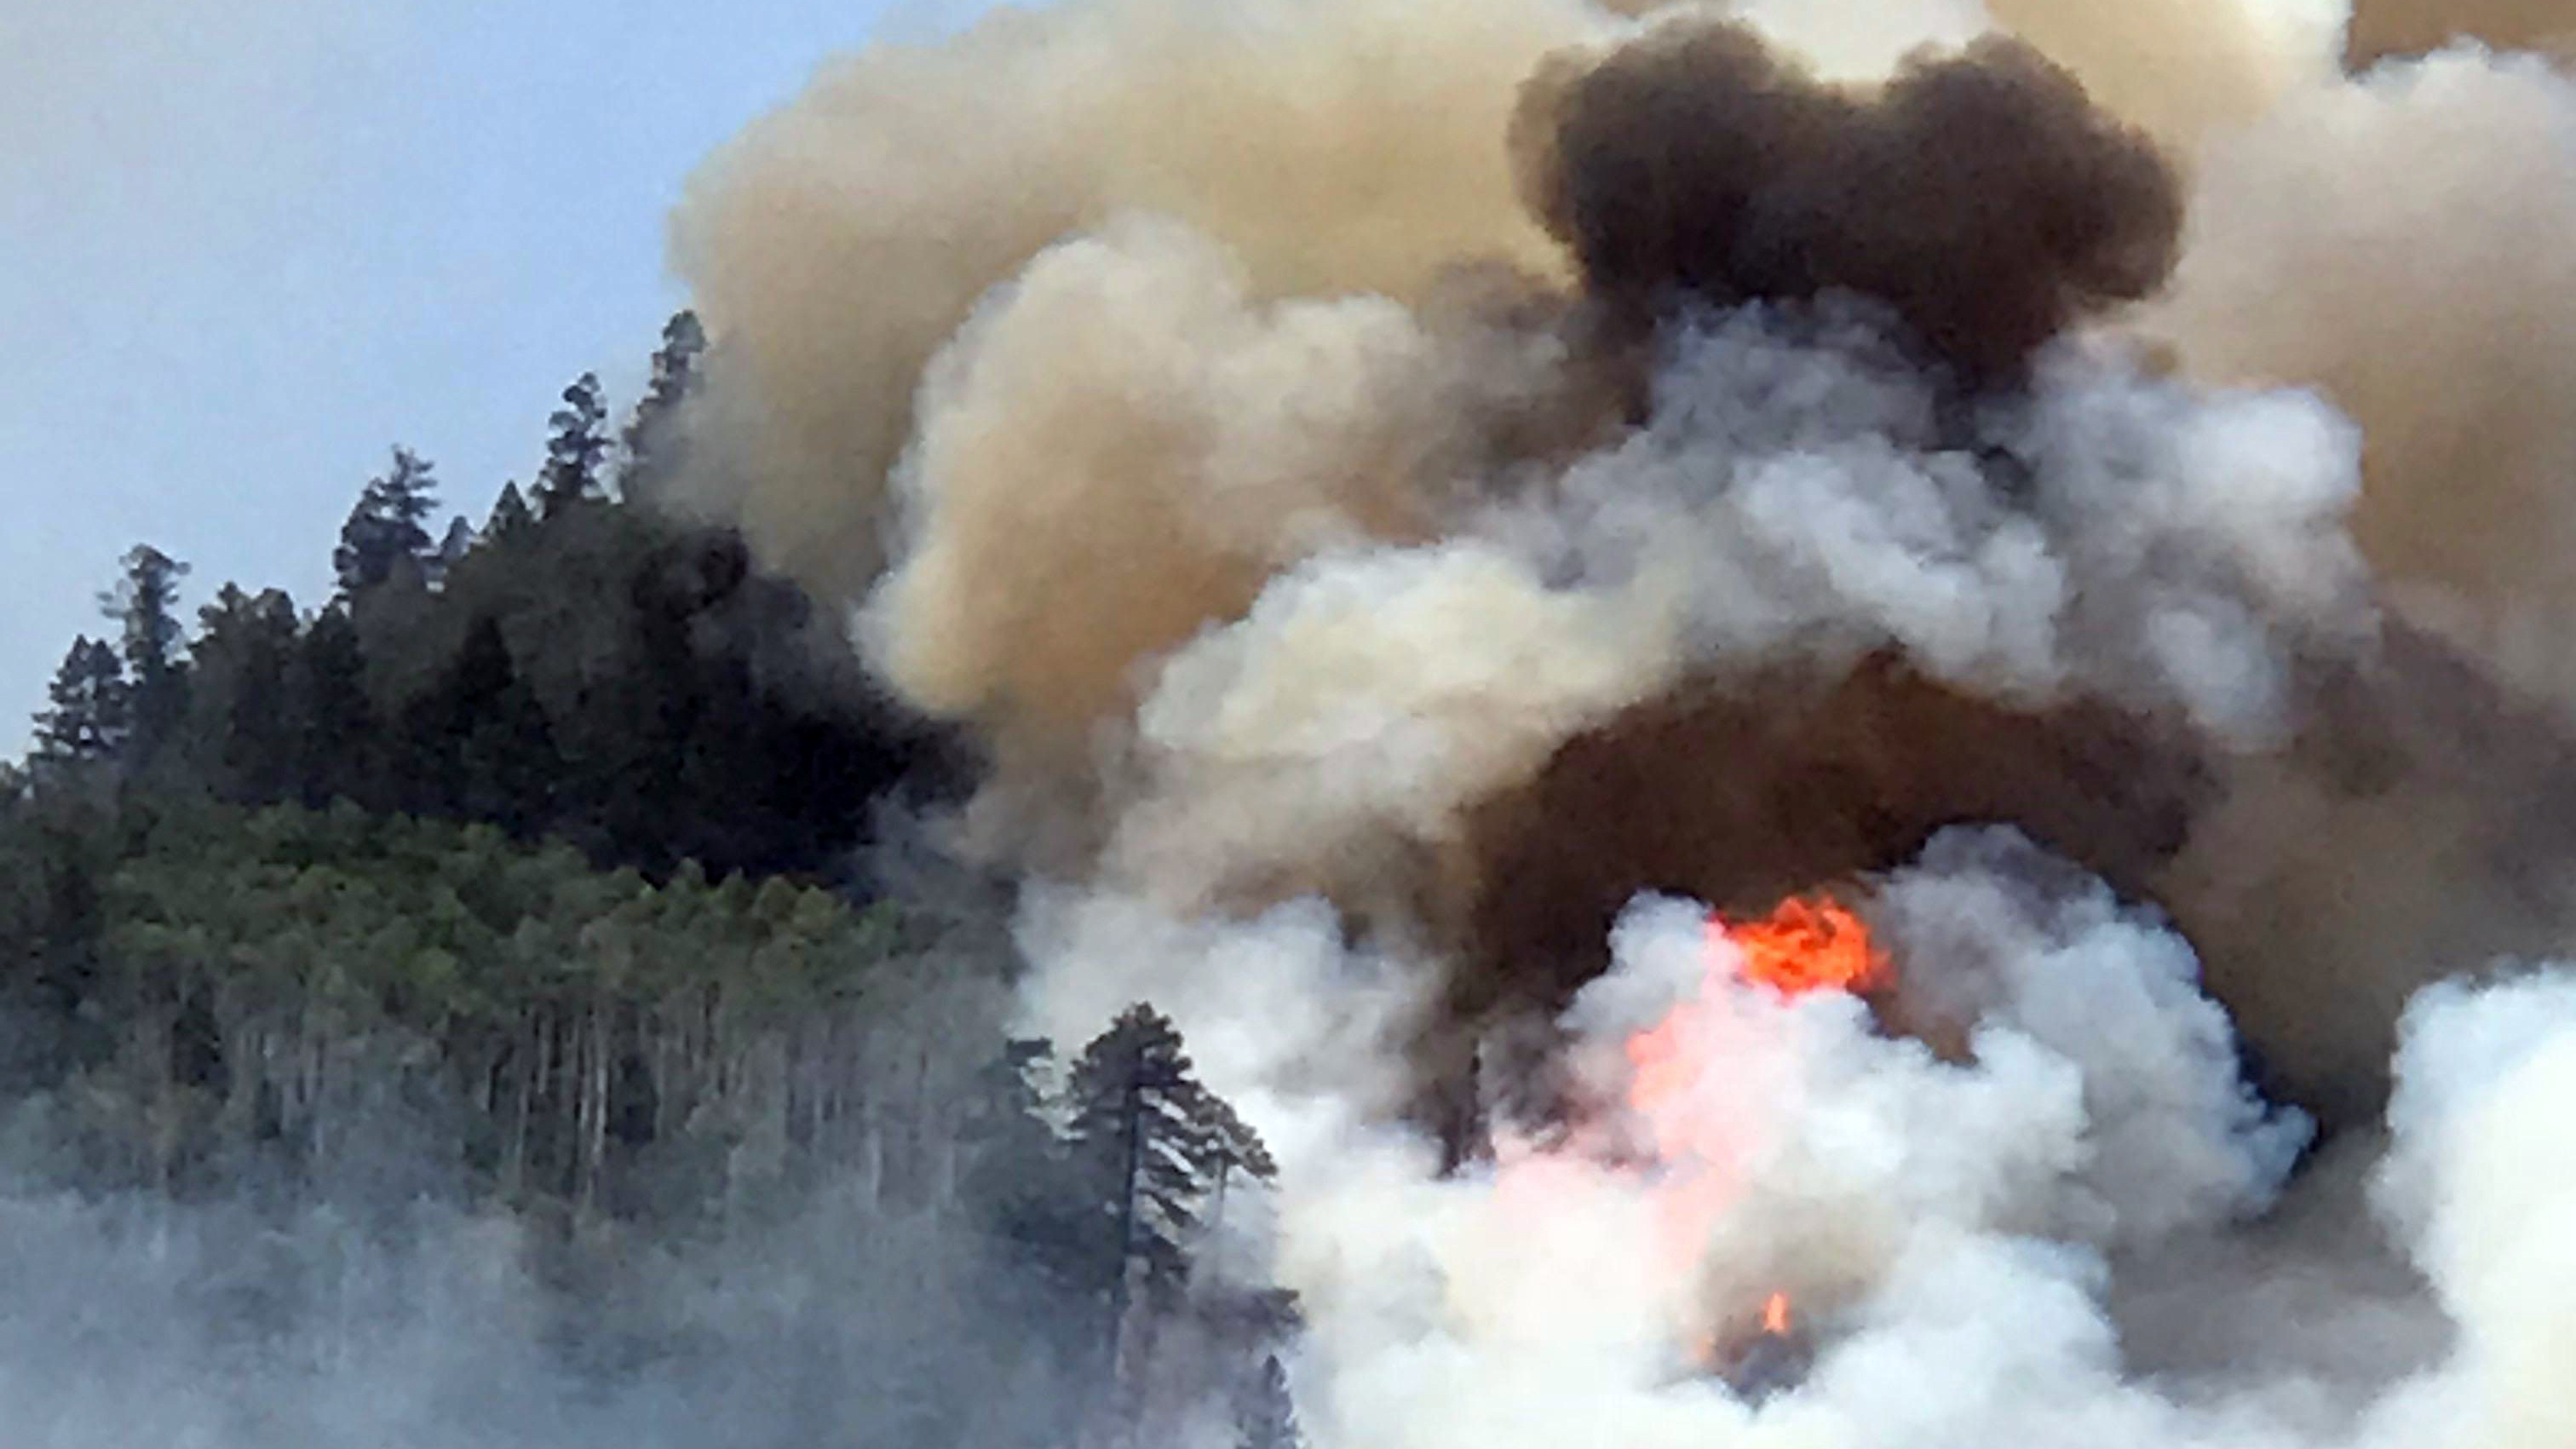 Flames and smoke billow skyward as a wildfire burns near Durango, Colo. on June 7, 2018. The 416 Fire continued to burn more than 27,000 acres Wednesday morning, causing the closure of a nearby national forest.